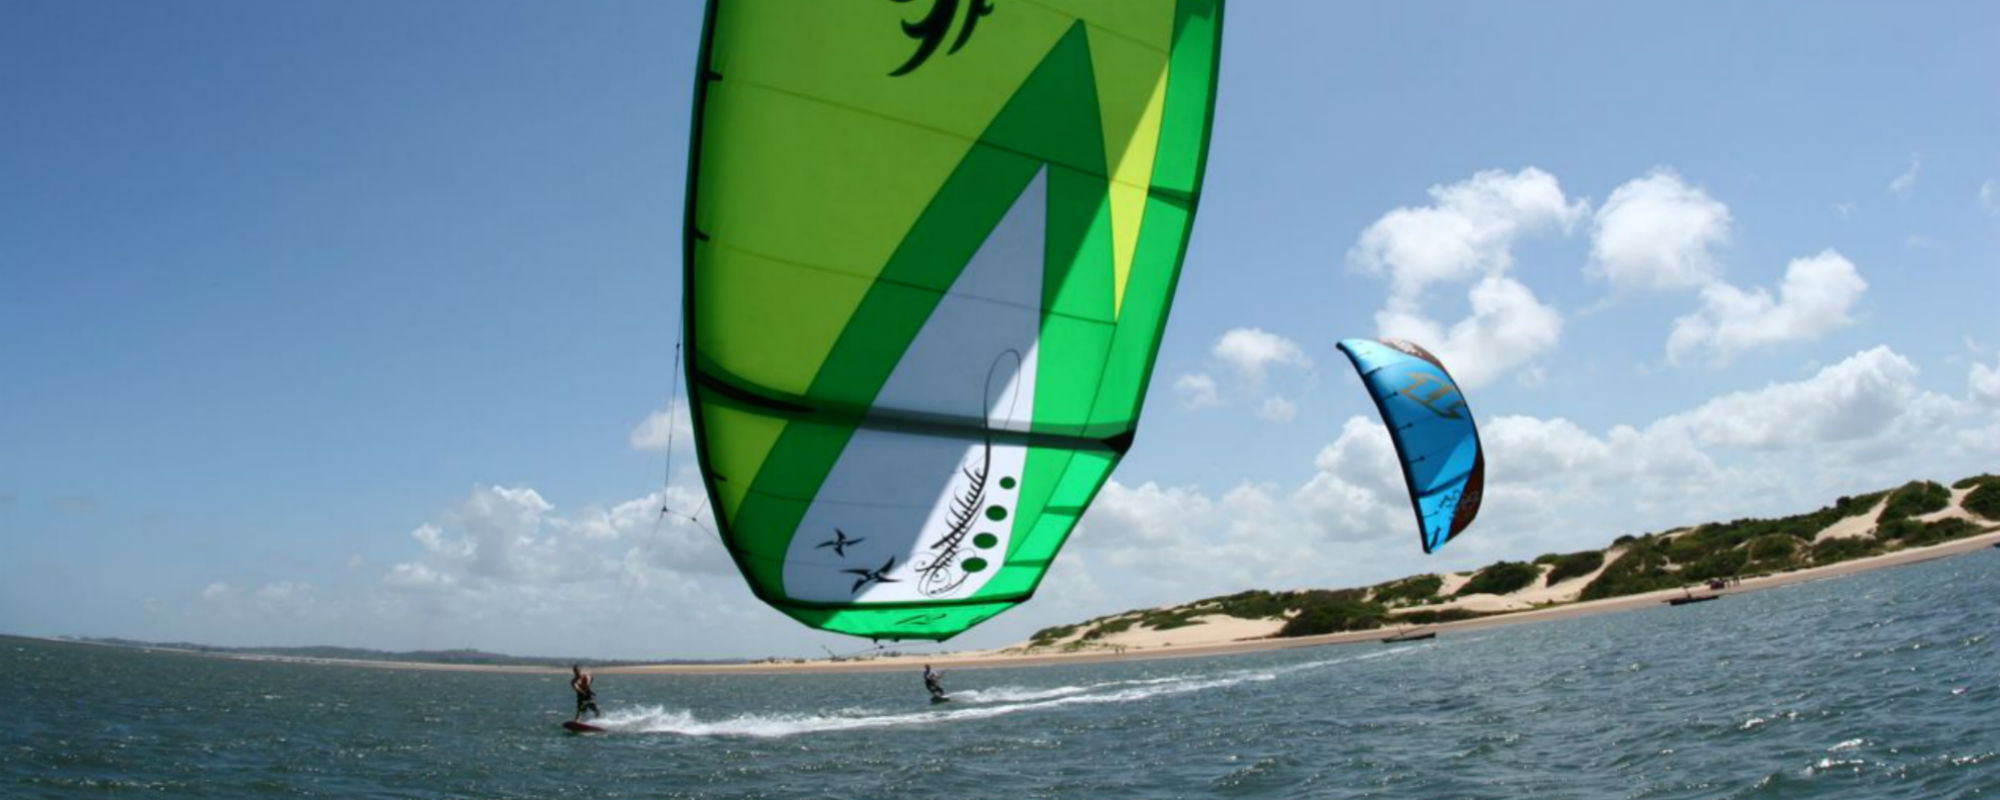 Che Shale Kiting Two Low Kites Flat Water Banner